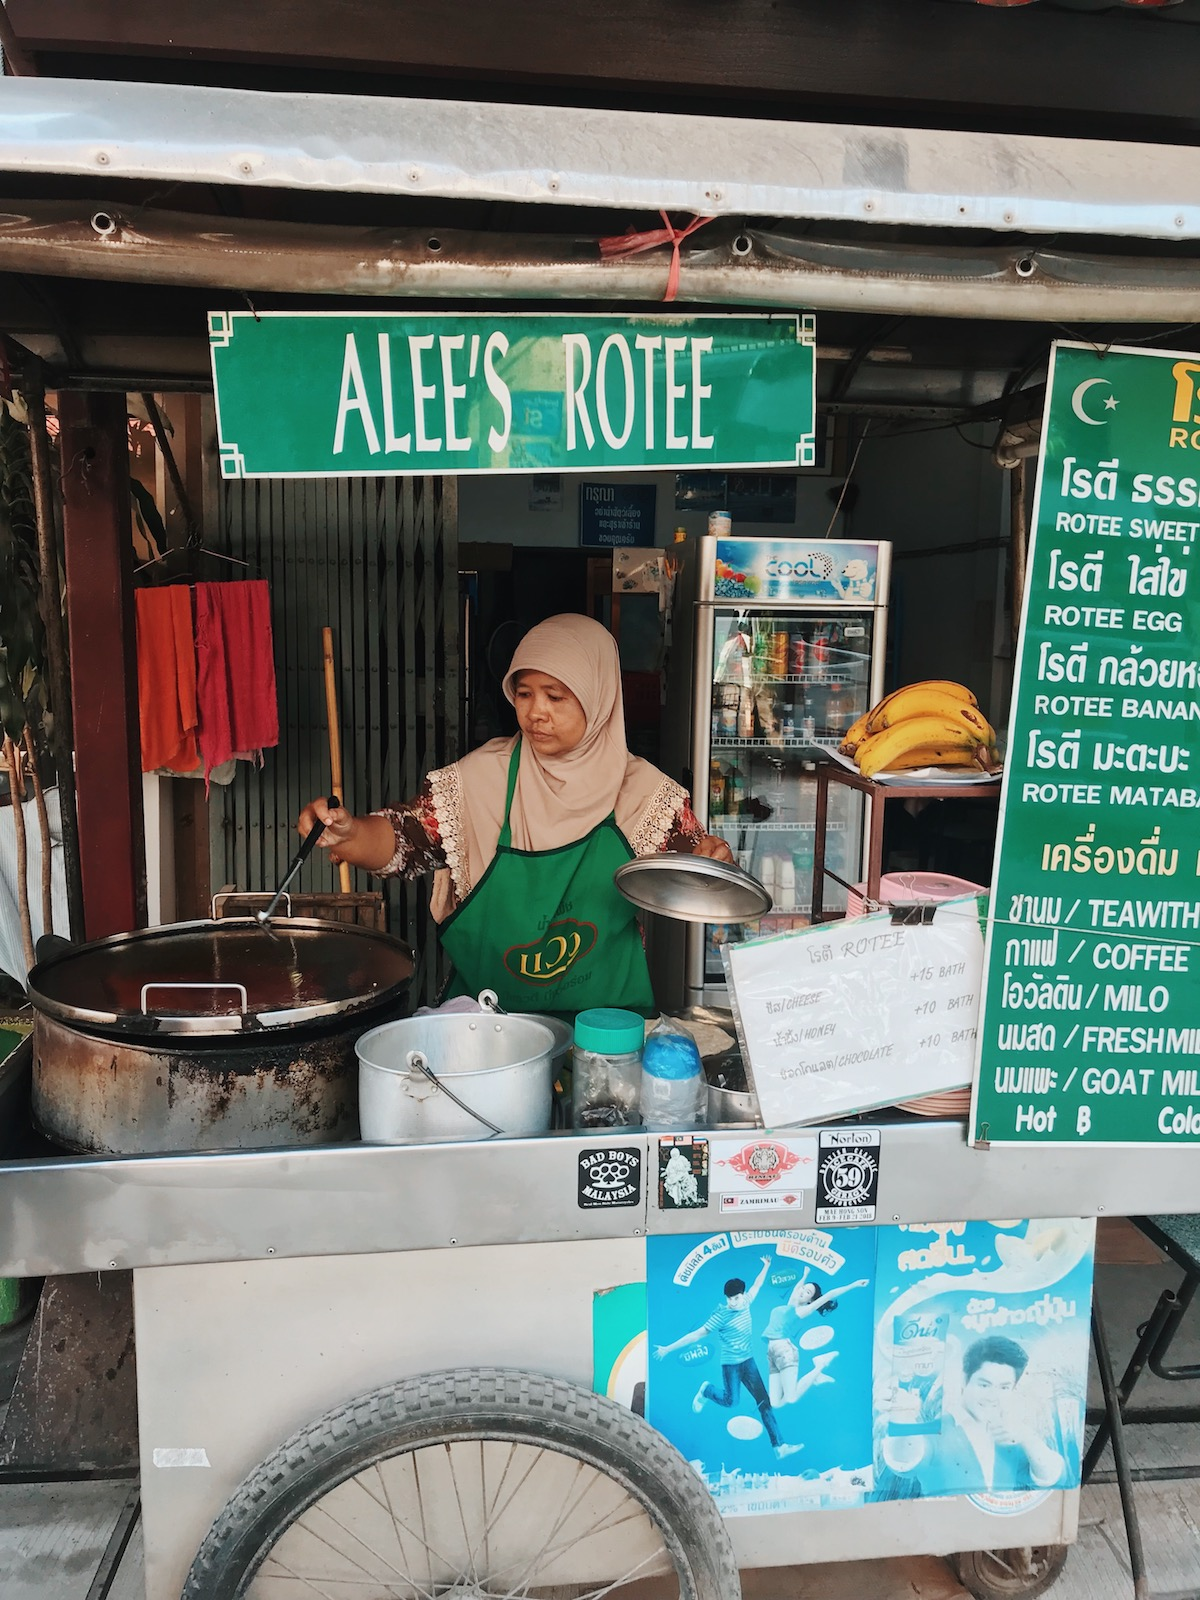 The Foodie Guide to Chiang Mai Thailand - Adventure Claire - Alee's Rotee - Claire Eliza